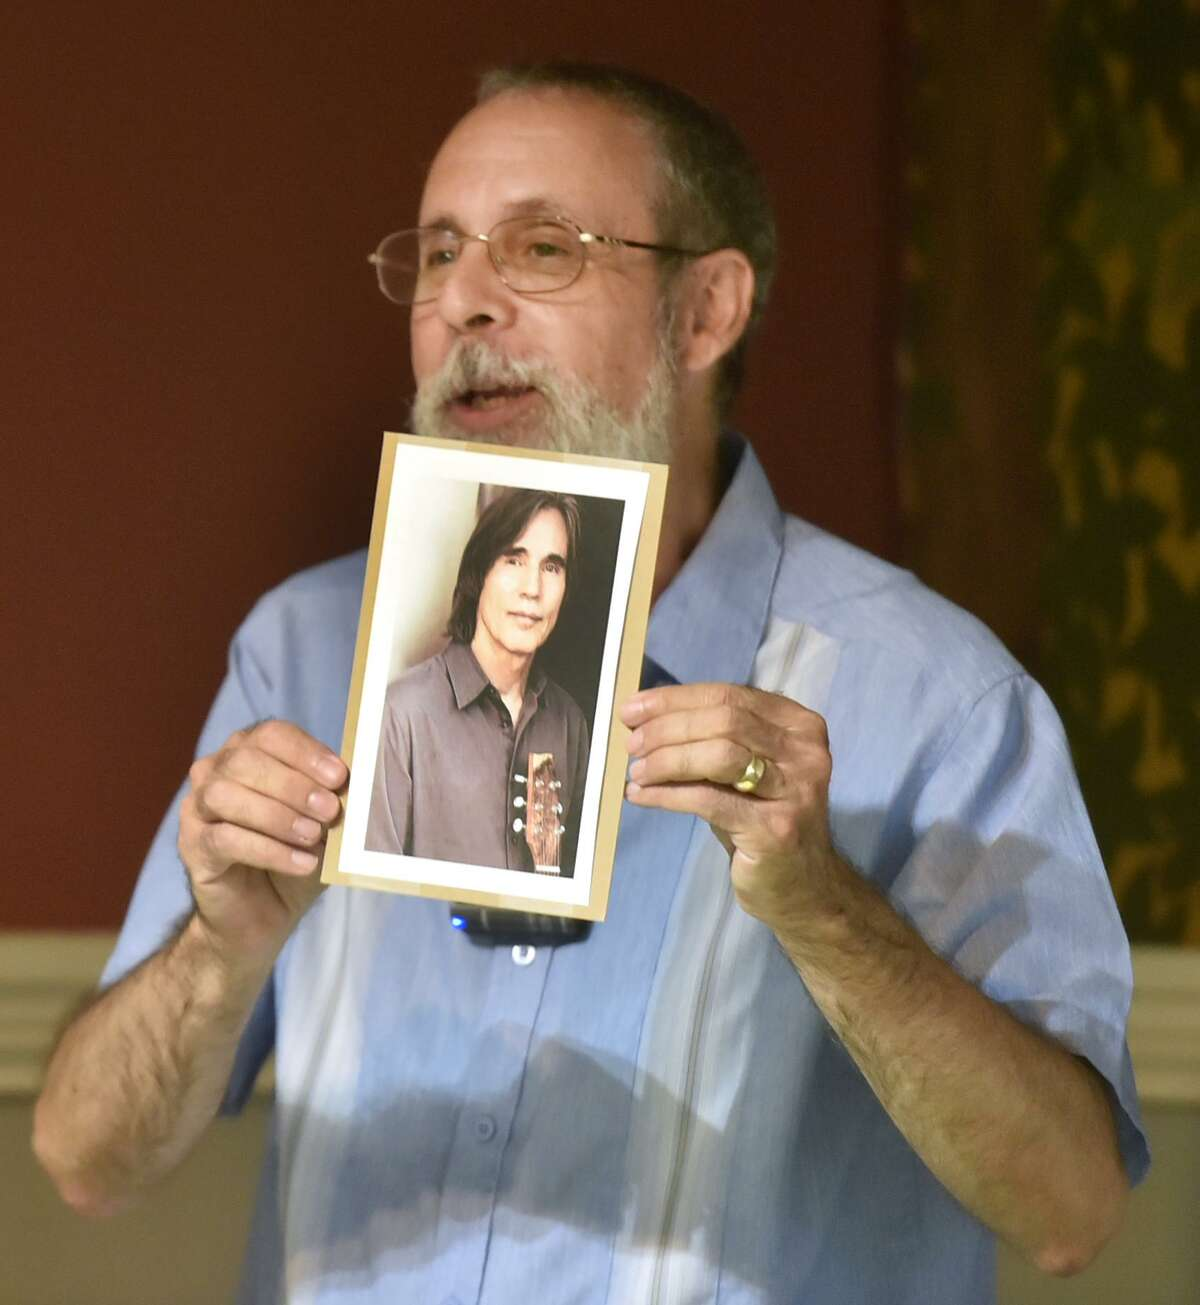 New Haven, Connecticut - Tuesday, July 31, 2018: Stan Heller, Administrator of Promoting Enduring Peace, shows a photo of singer/songwriter Jackson Browne who is this year's recipient of its annual Gandhi Peace Award during a press conference Tuesday at the New Haven Free Public Library in New Haven.